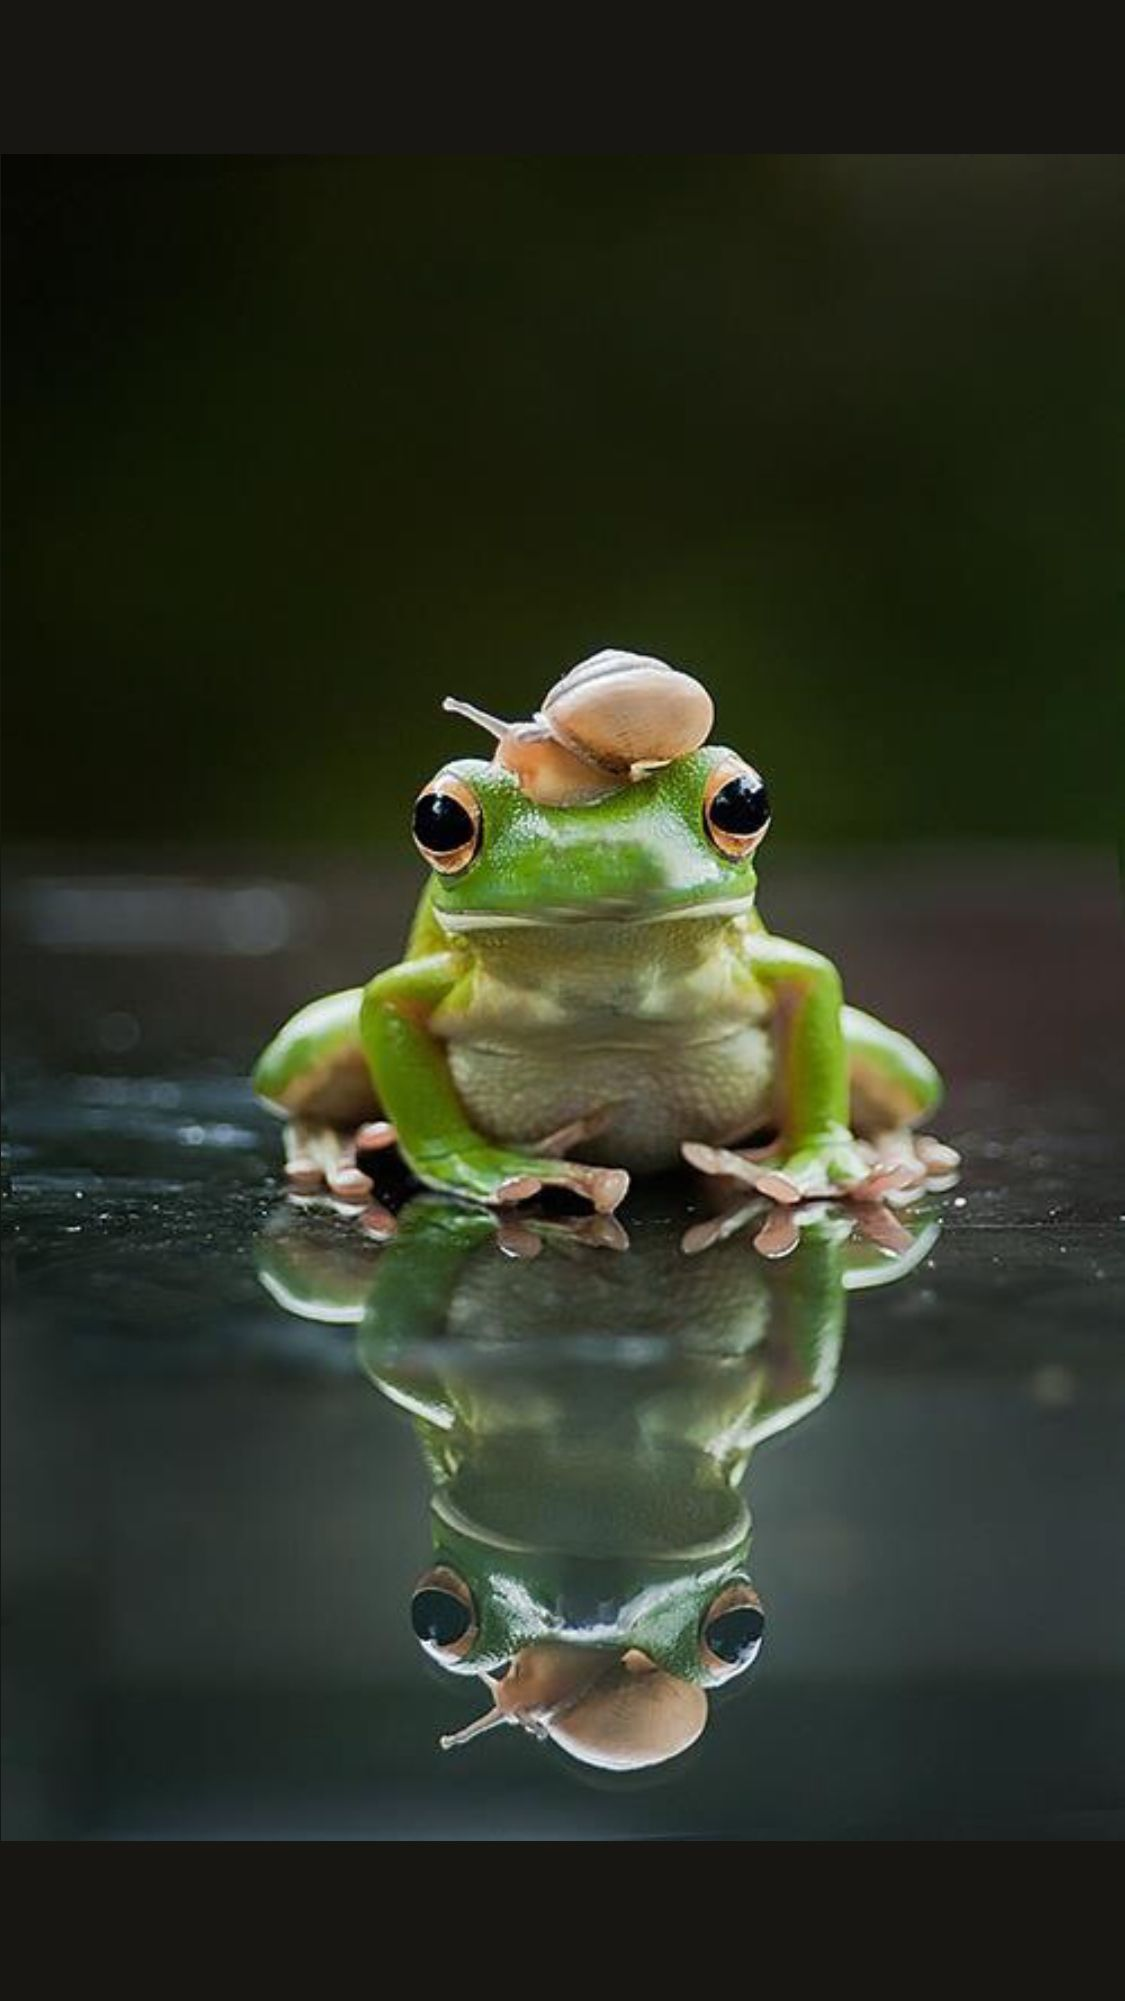 Frog with a snail hat